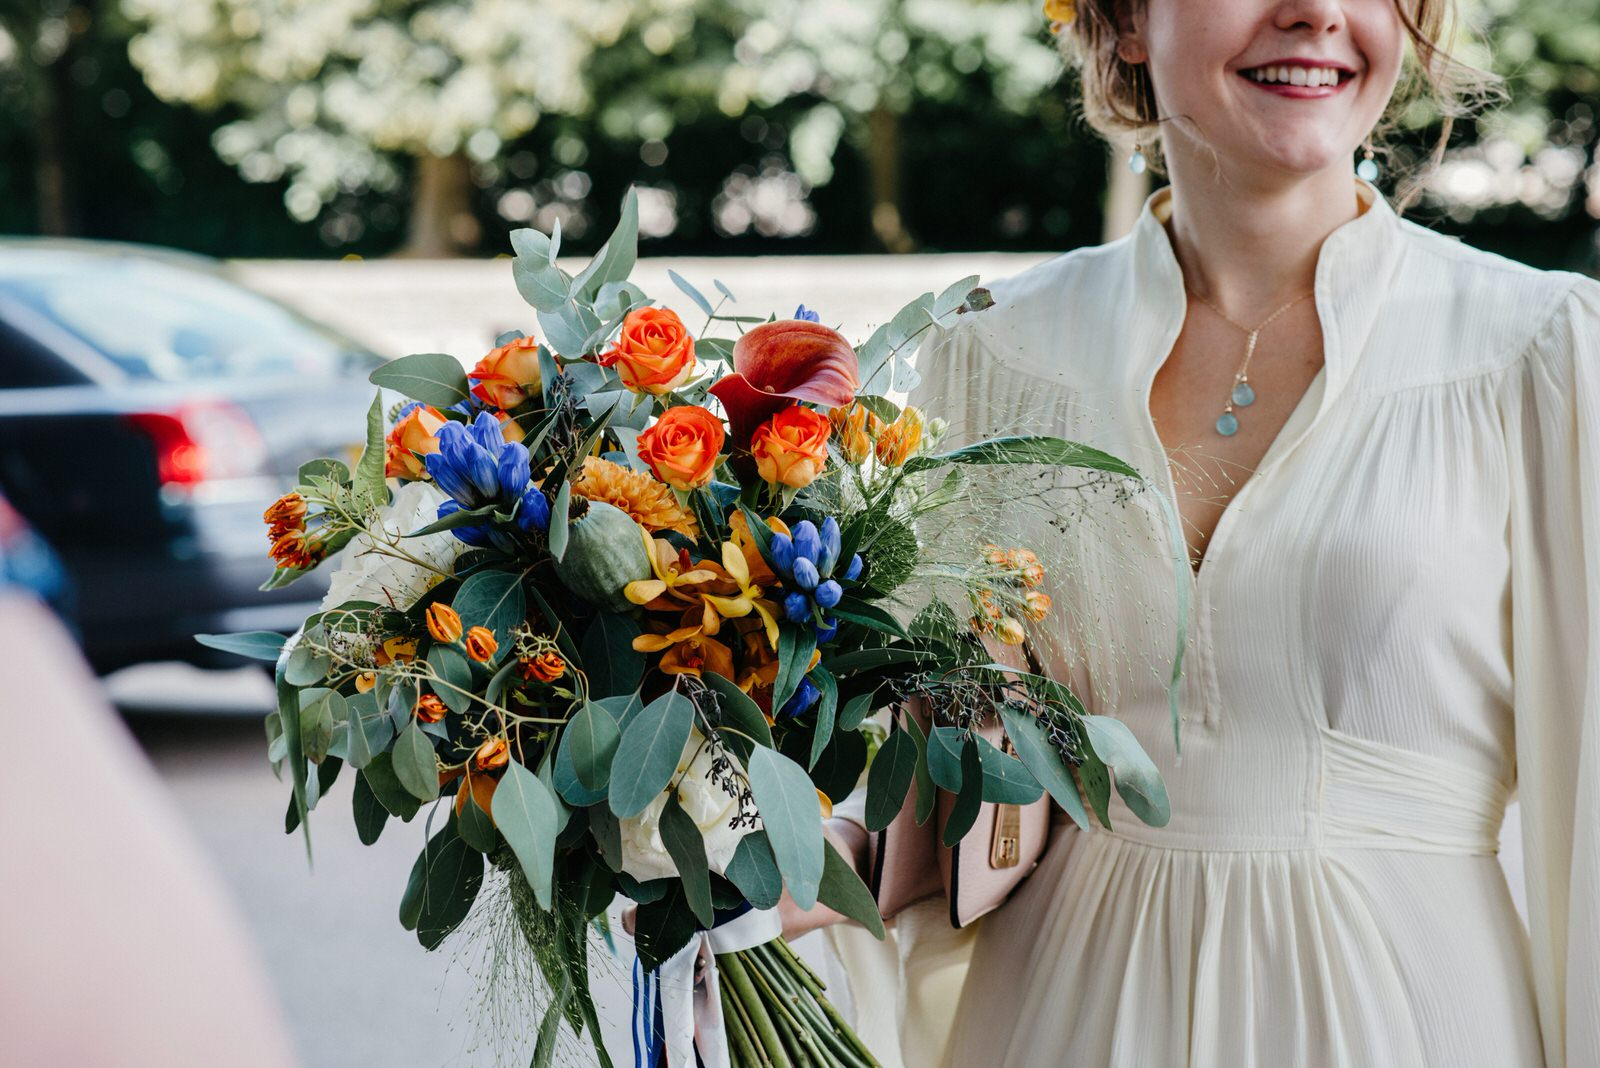 Colourful wedding flowers at a Creative, quirky city wedding in Cardiff